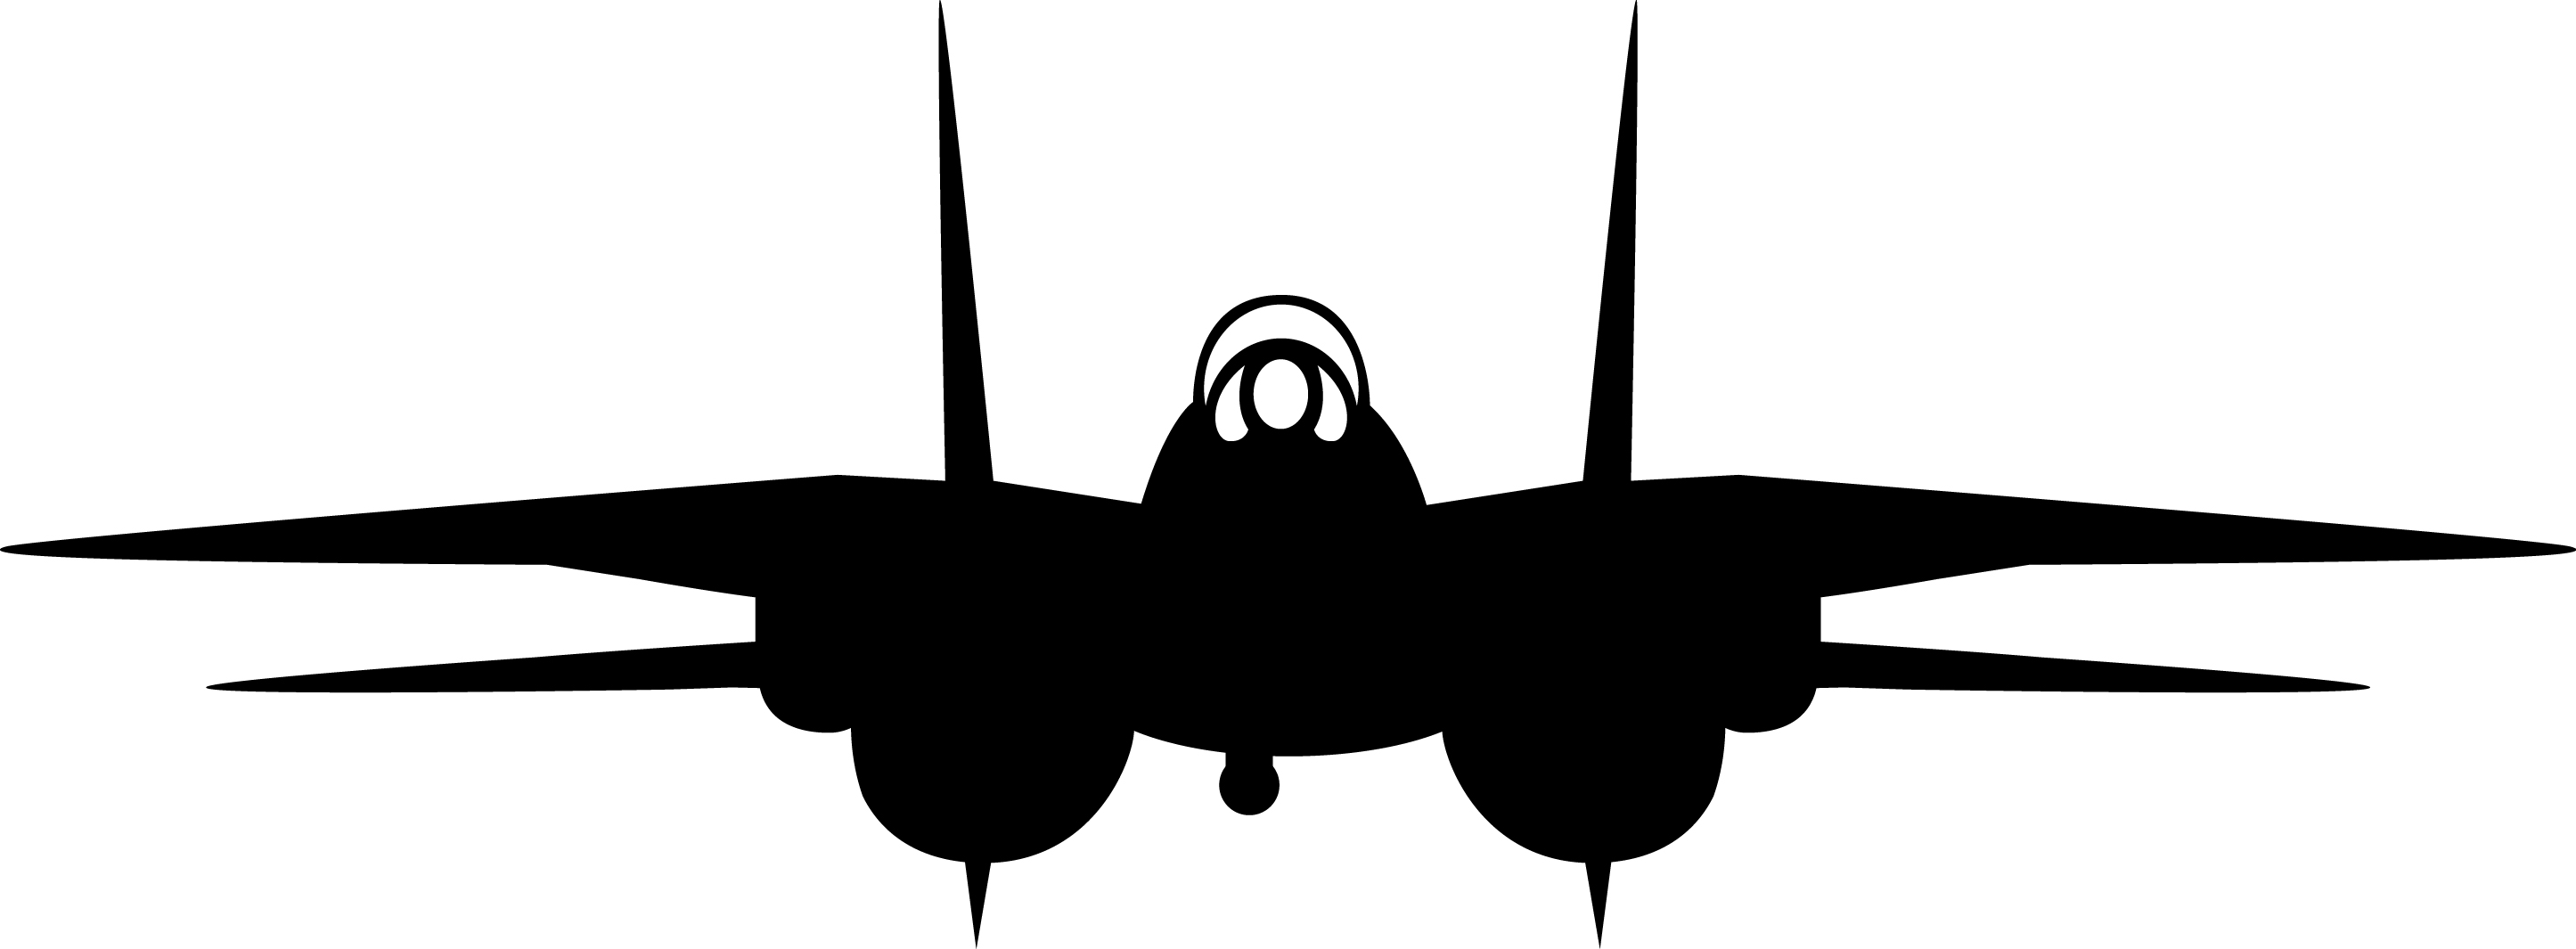 2891x1065 F 14 Tomcat Invertable Silhouette Silhouettes And Woodworking